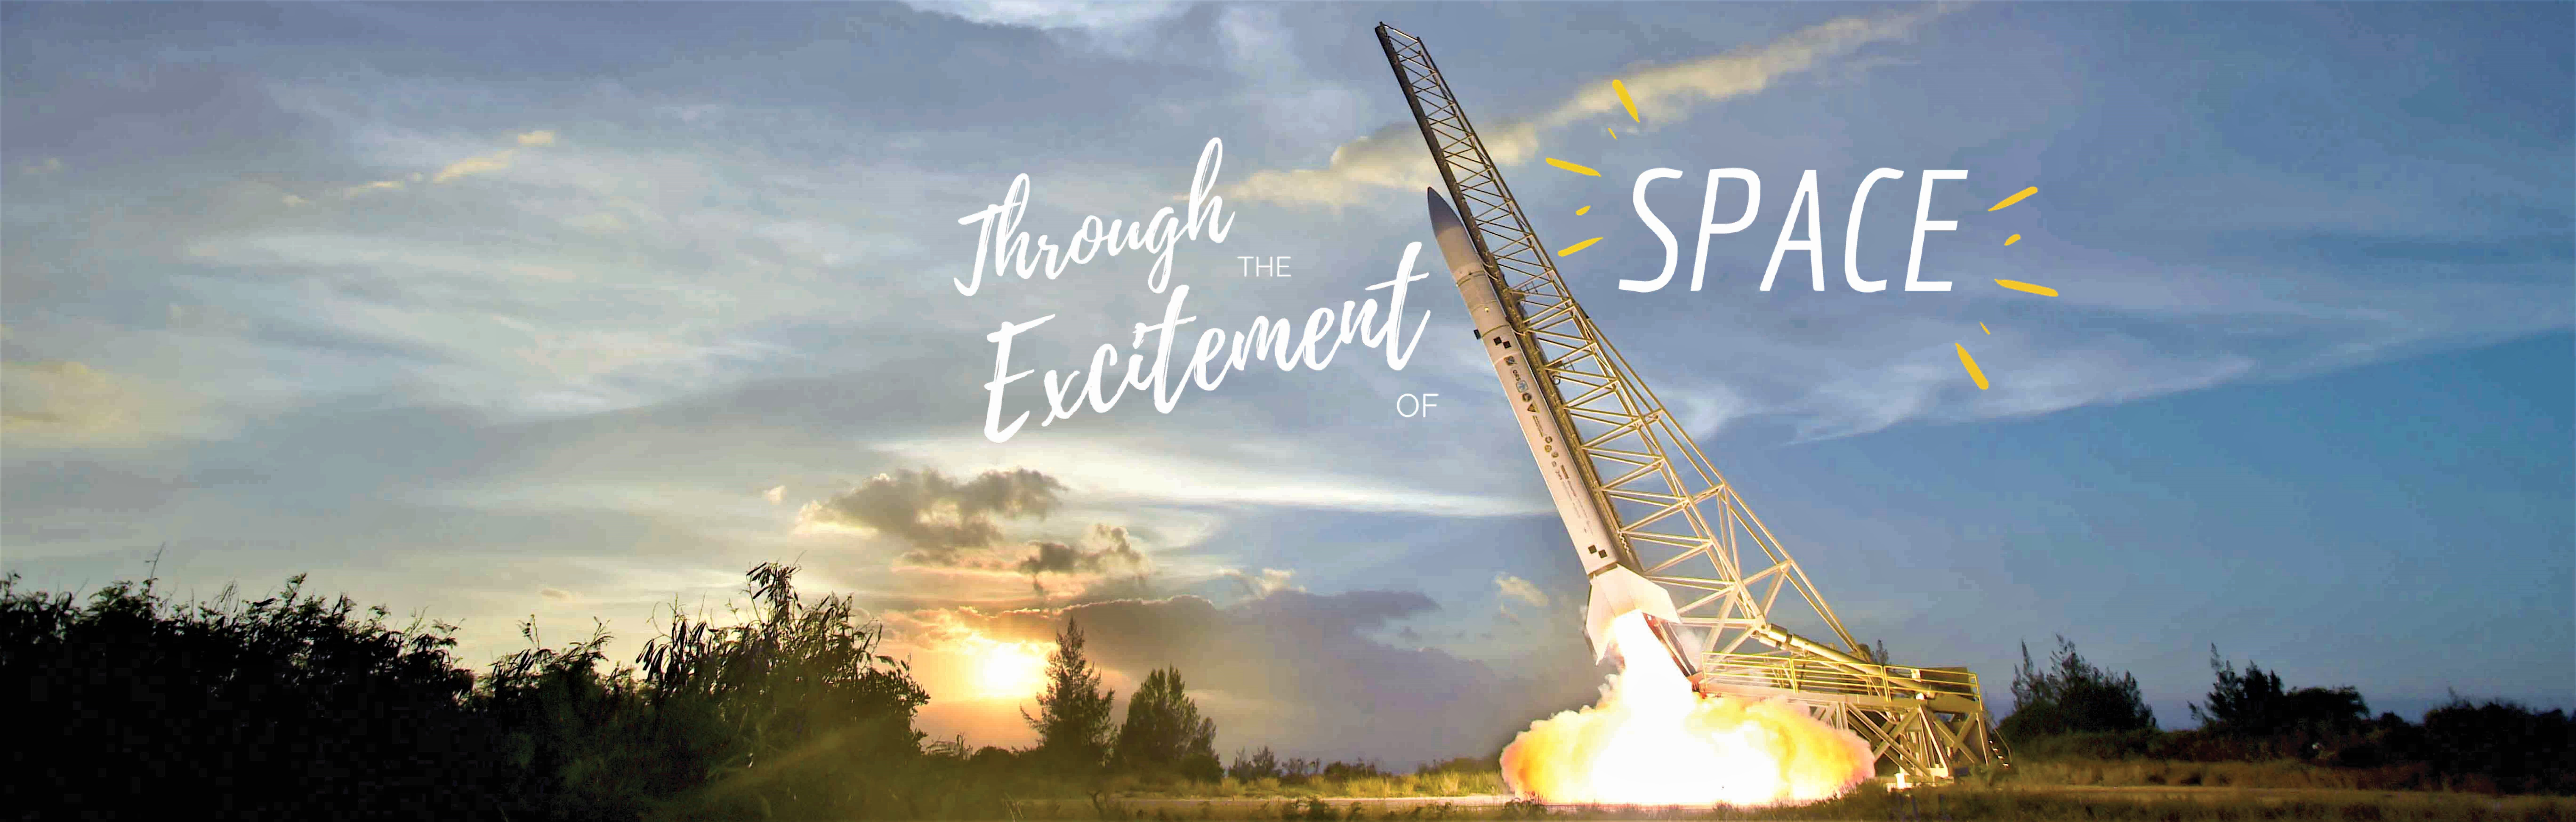 Through The Excitement of Space HSFL Launch